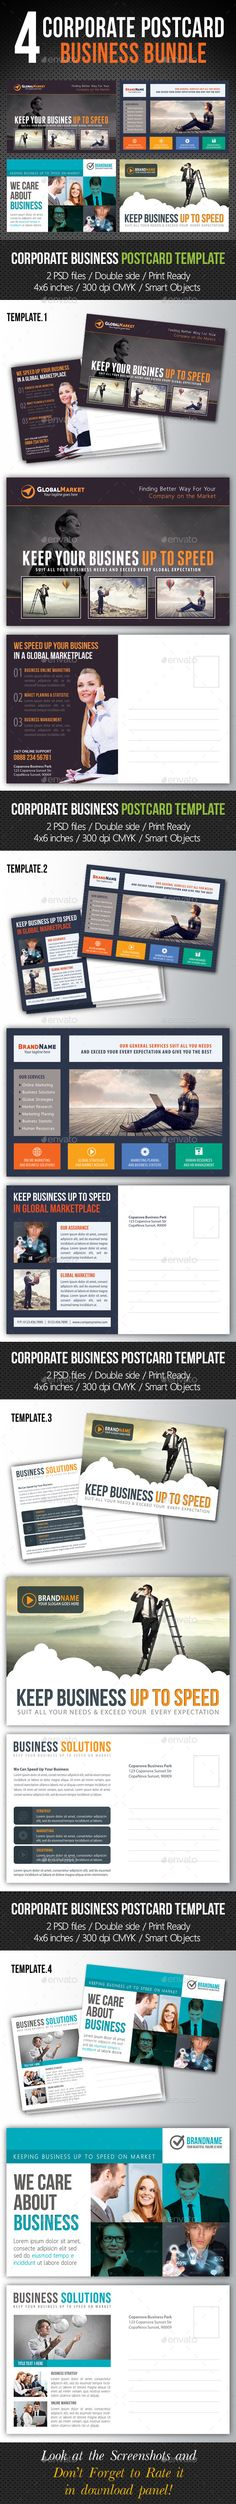 4 in 1 Corporate Business Postcard Bundle V02 - Cards & Invites Print Templates